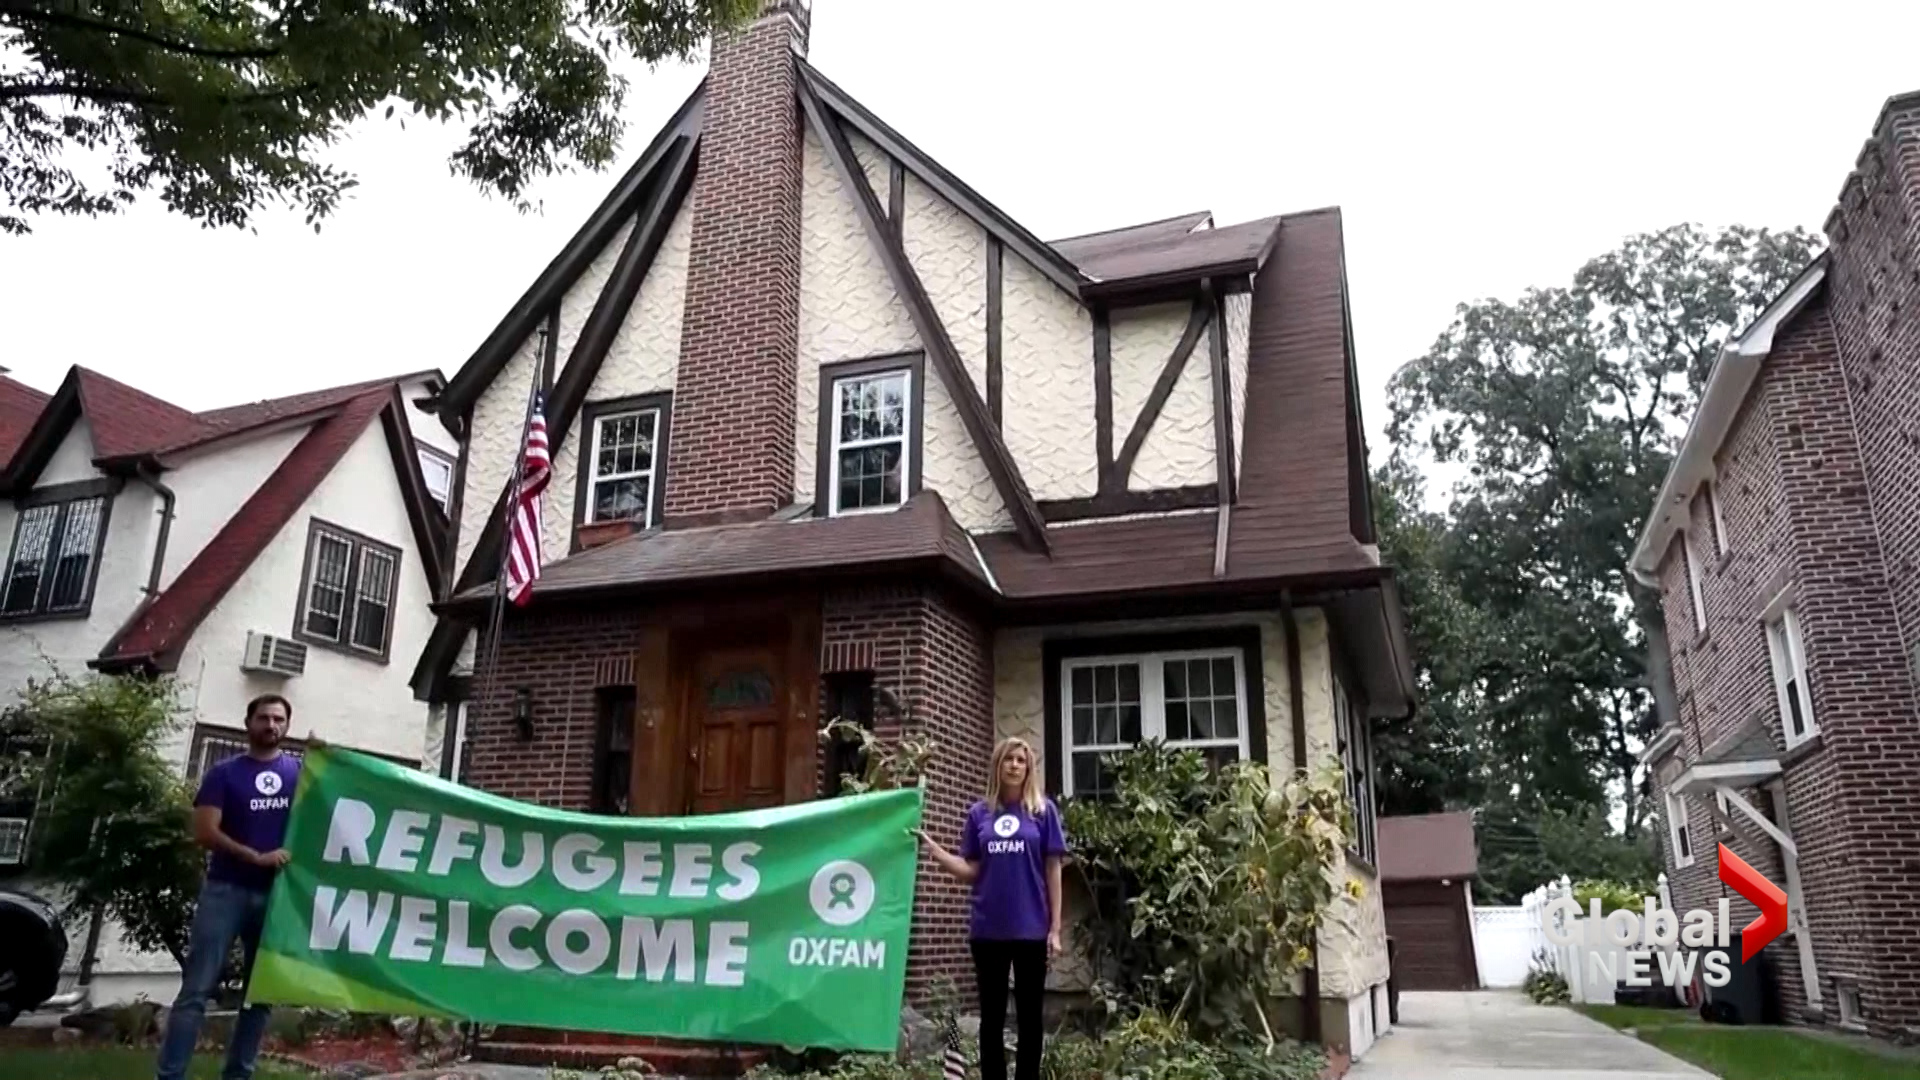 A Charity Just Rented Trump's Childhood Home For Refugees